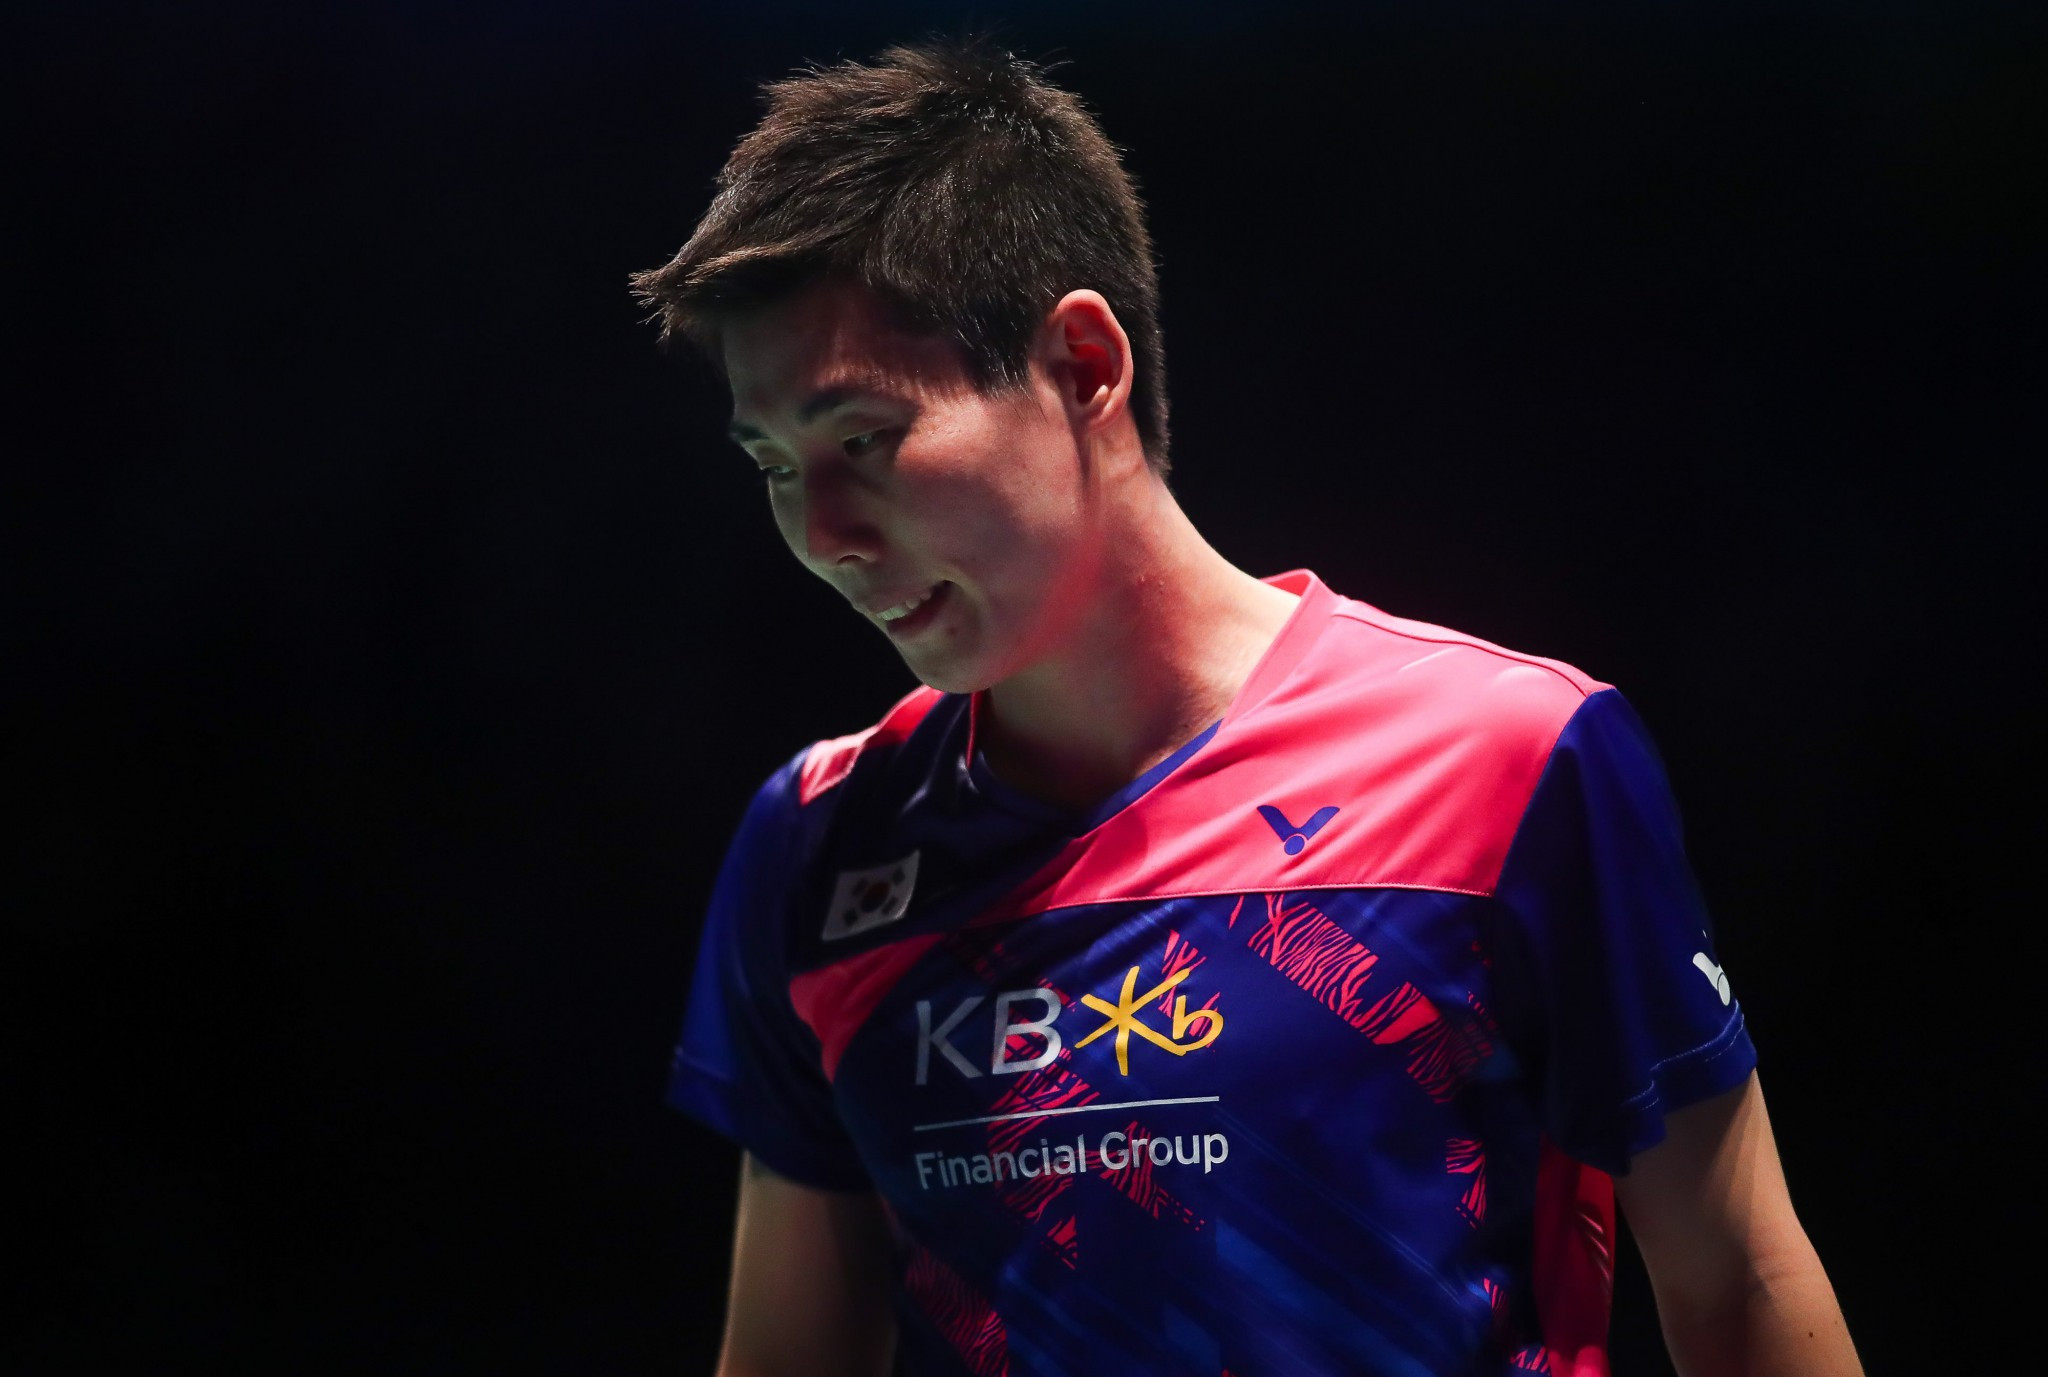 BWF Japan Open offers immediate redemption for world number one Son